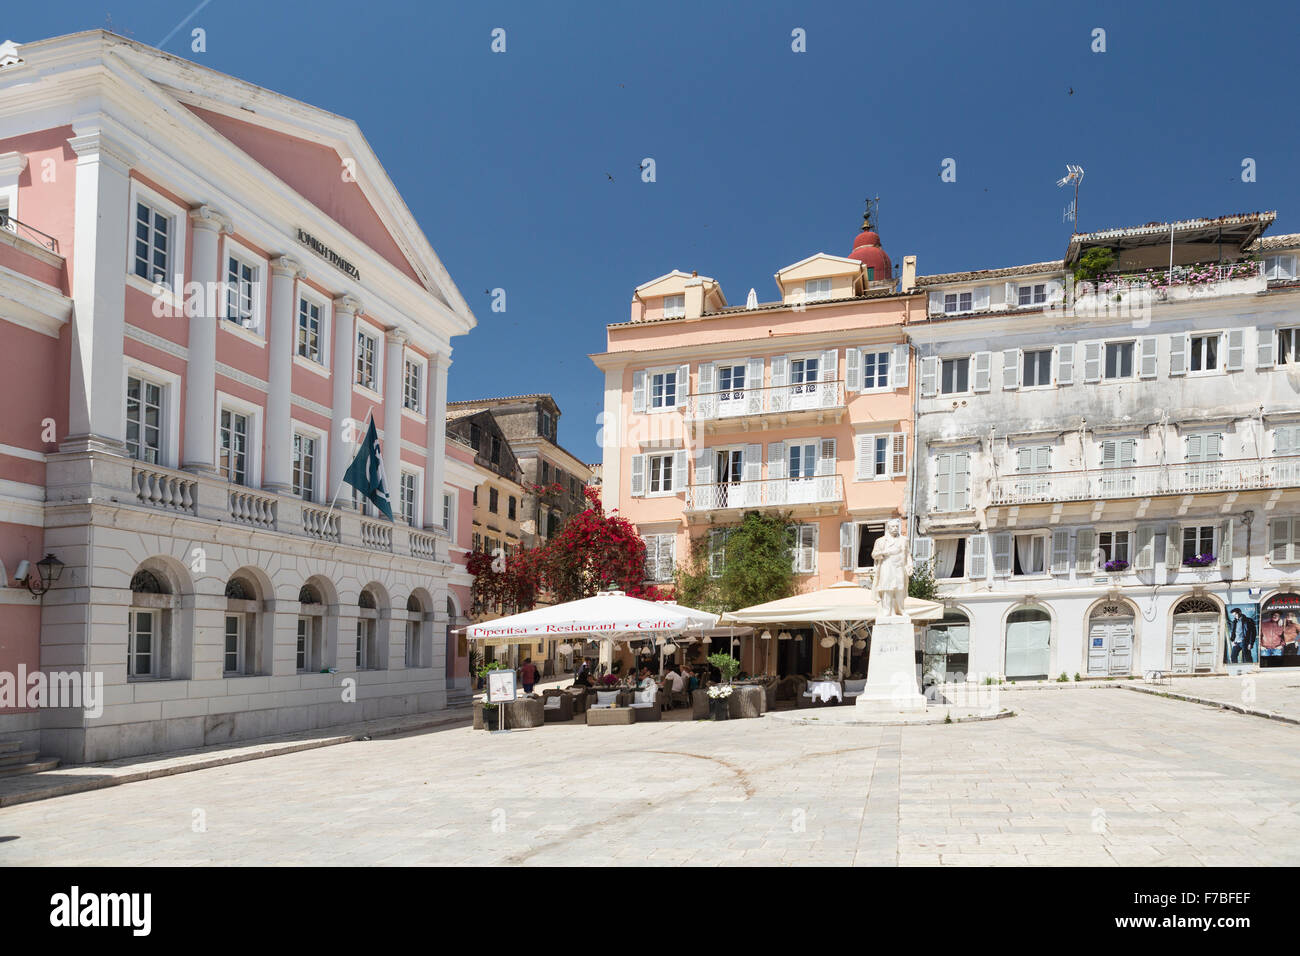 A town square and cafe in Old Corfu Town, Corfu. Stock Photo